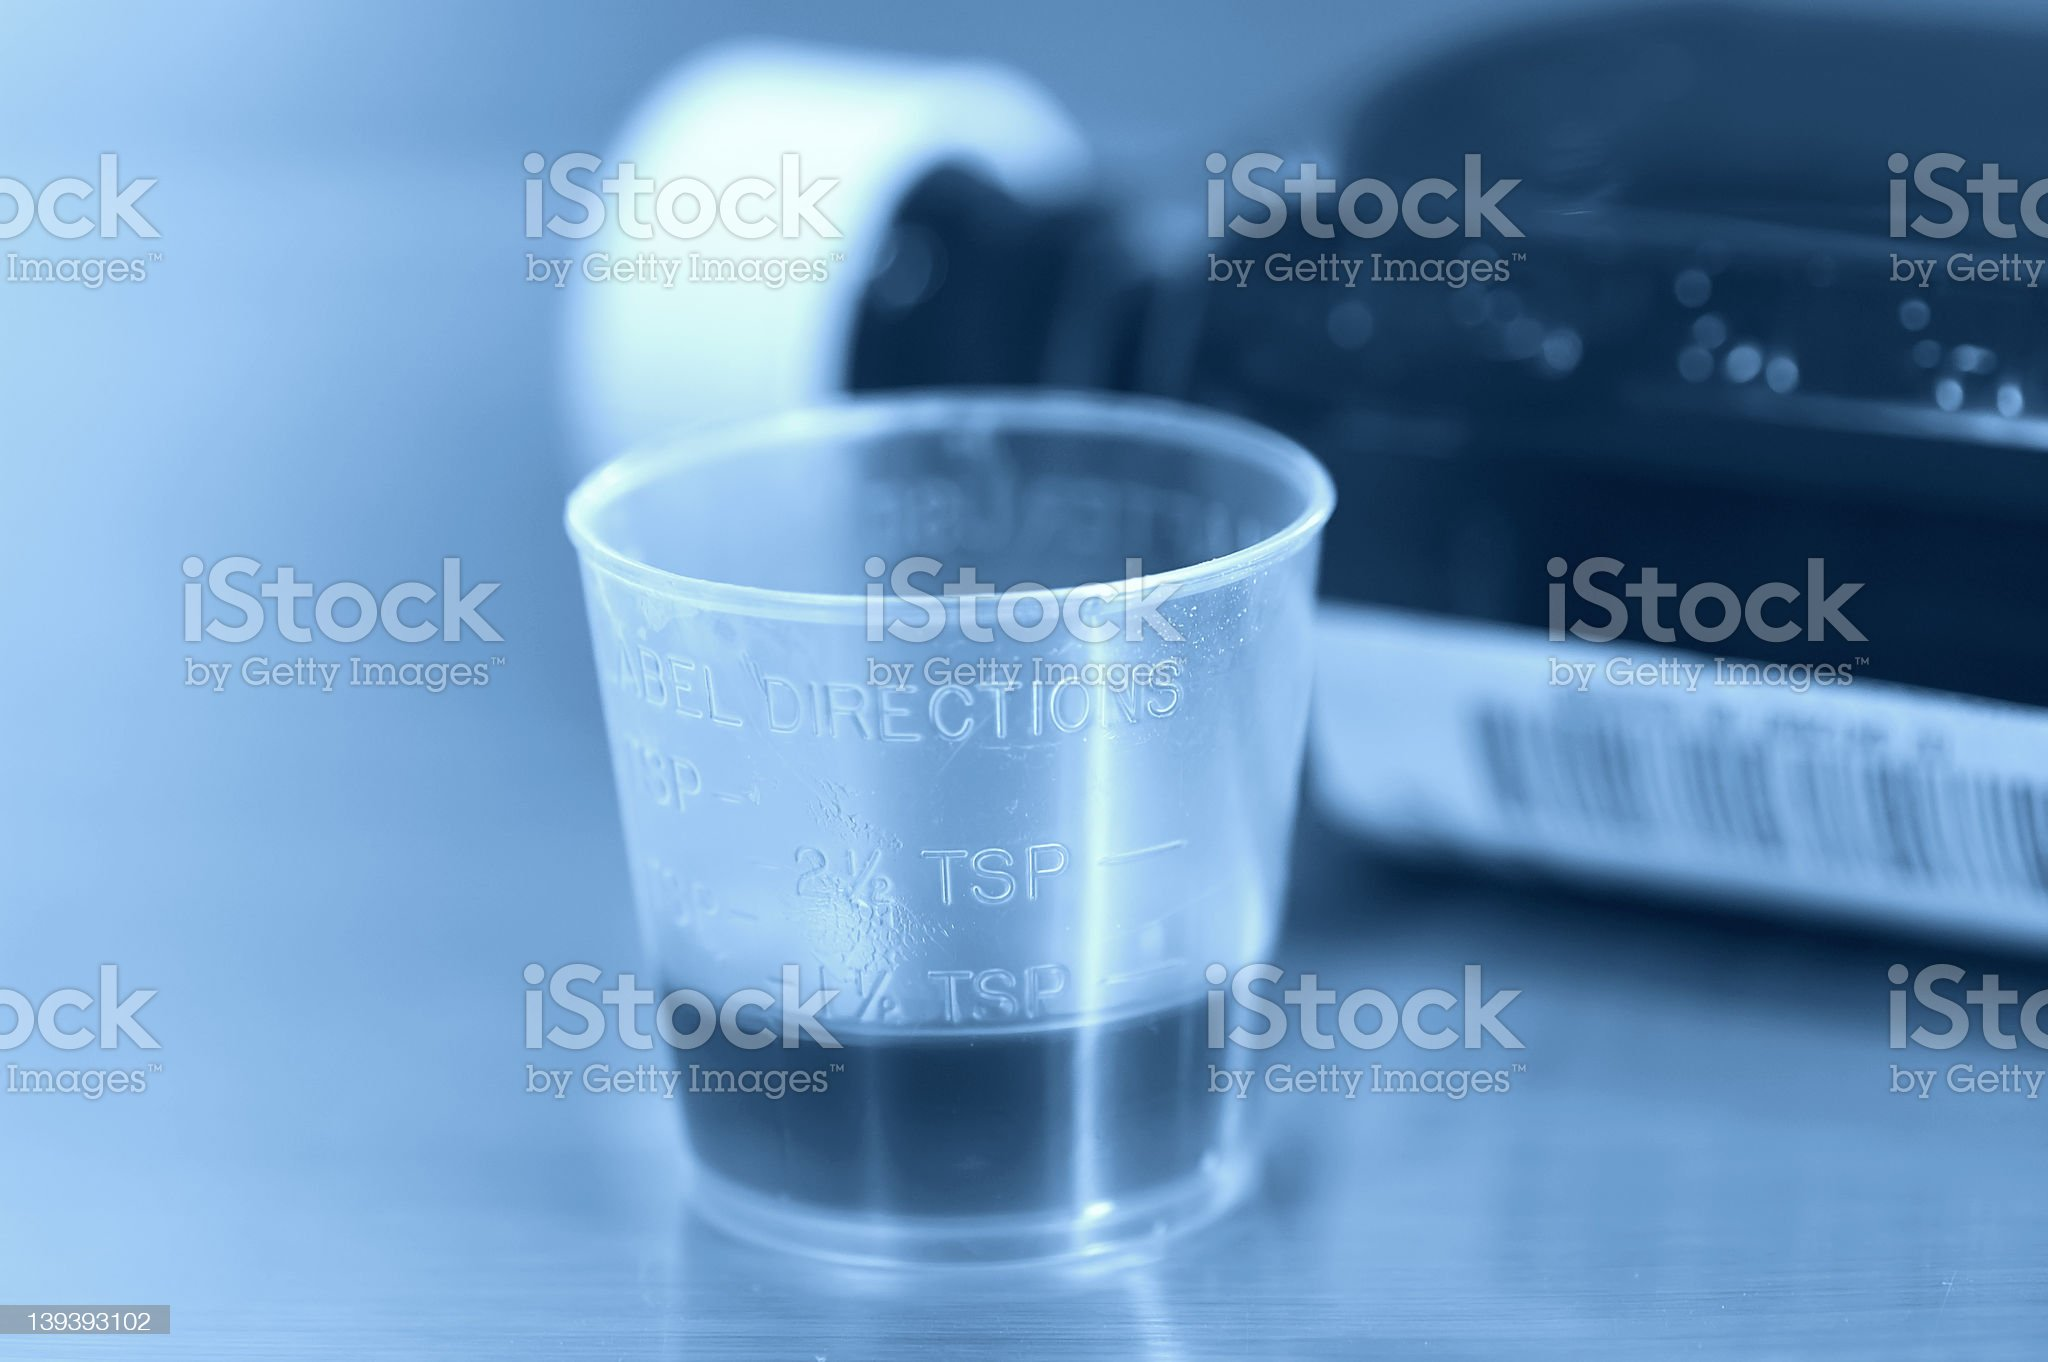 Cough Syrup 2 royalty-free stock photo